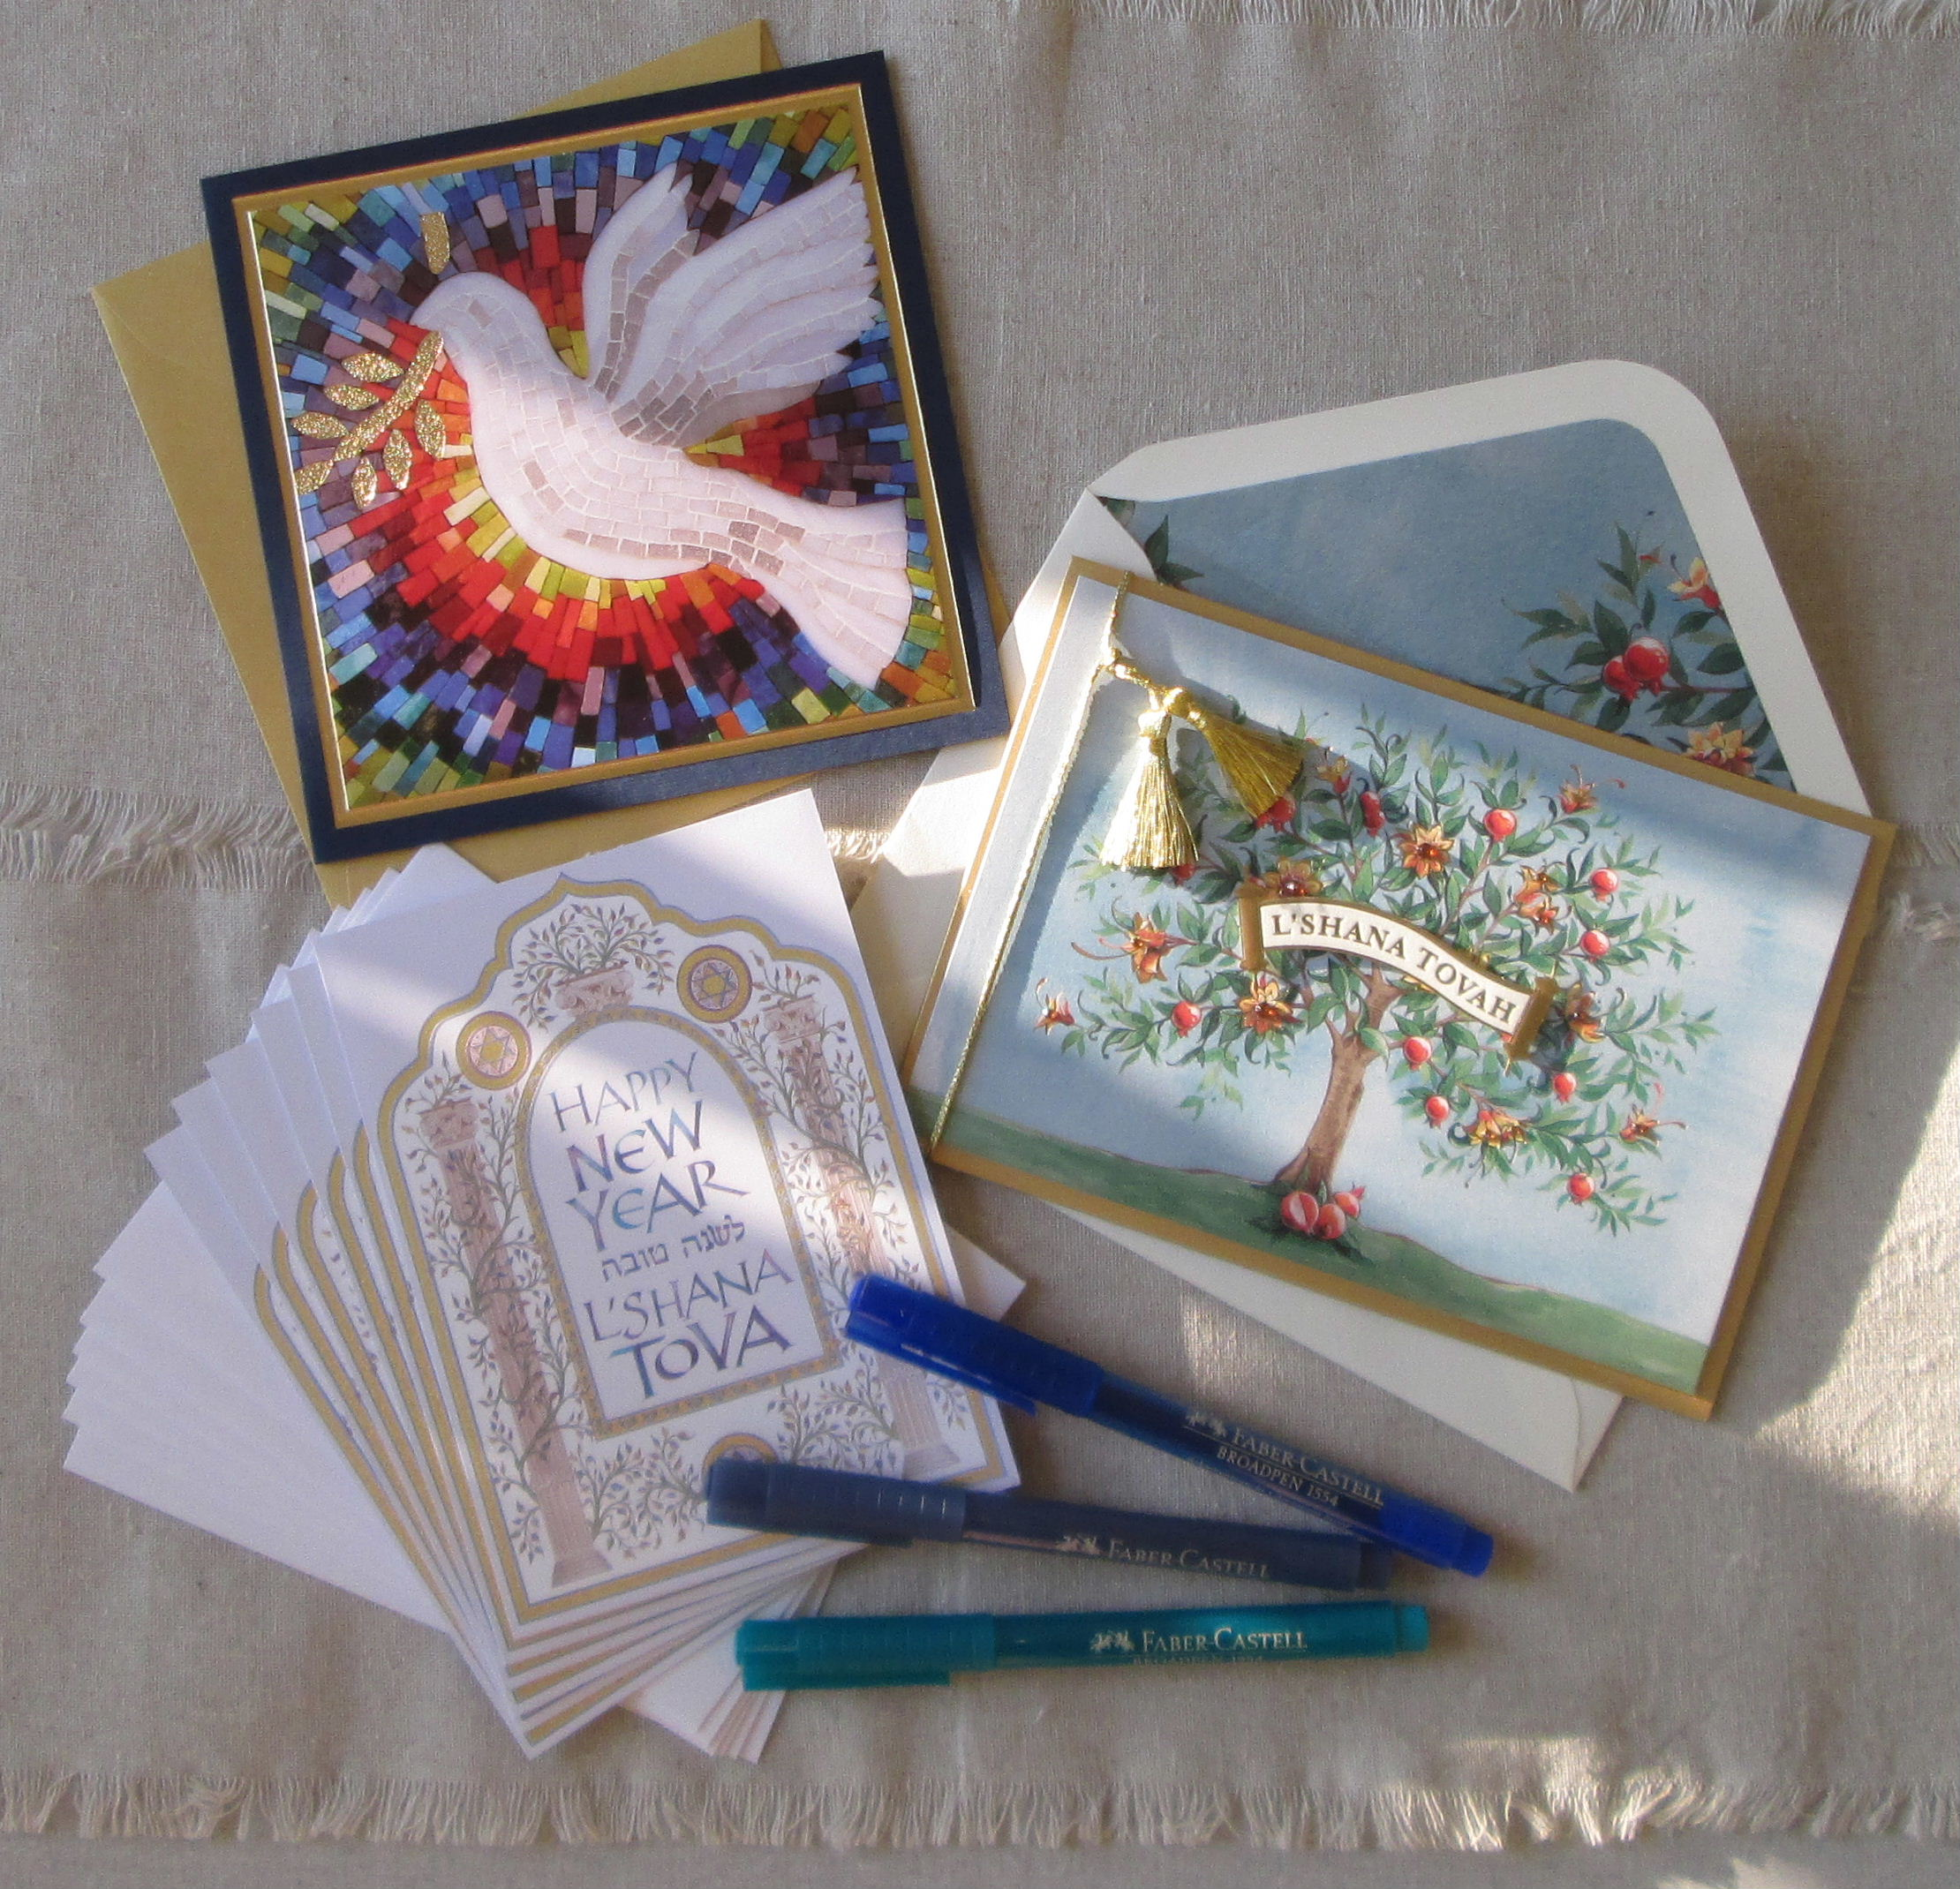 September 5, 2015: Send greetings to celebrate the new year with gorgeous Rosh Hashanah cards, available in singles or packages. L' Shanah tovah tikatevu, and may you share this sweet celebration with family and friends! Rosh Hashanah begins next Sunday.